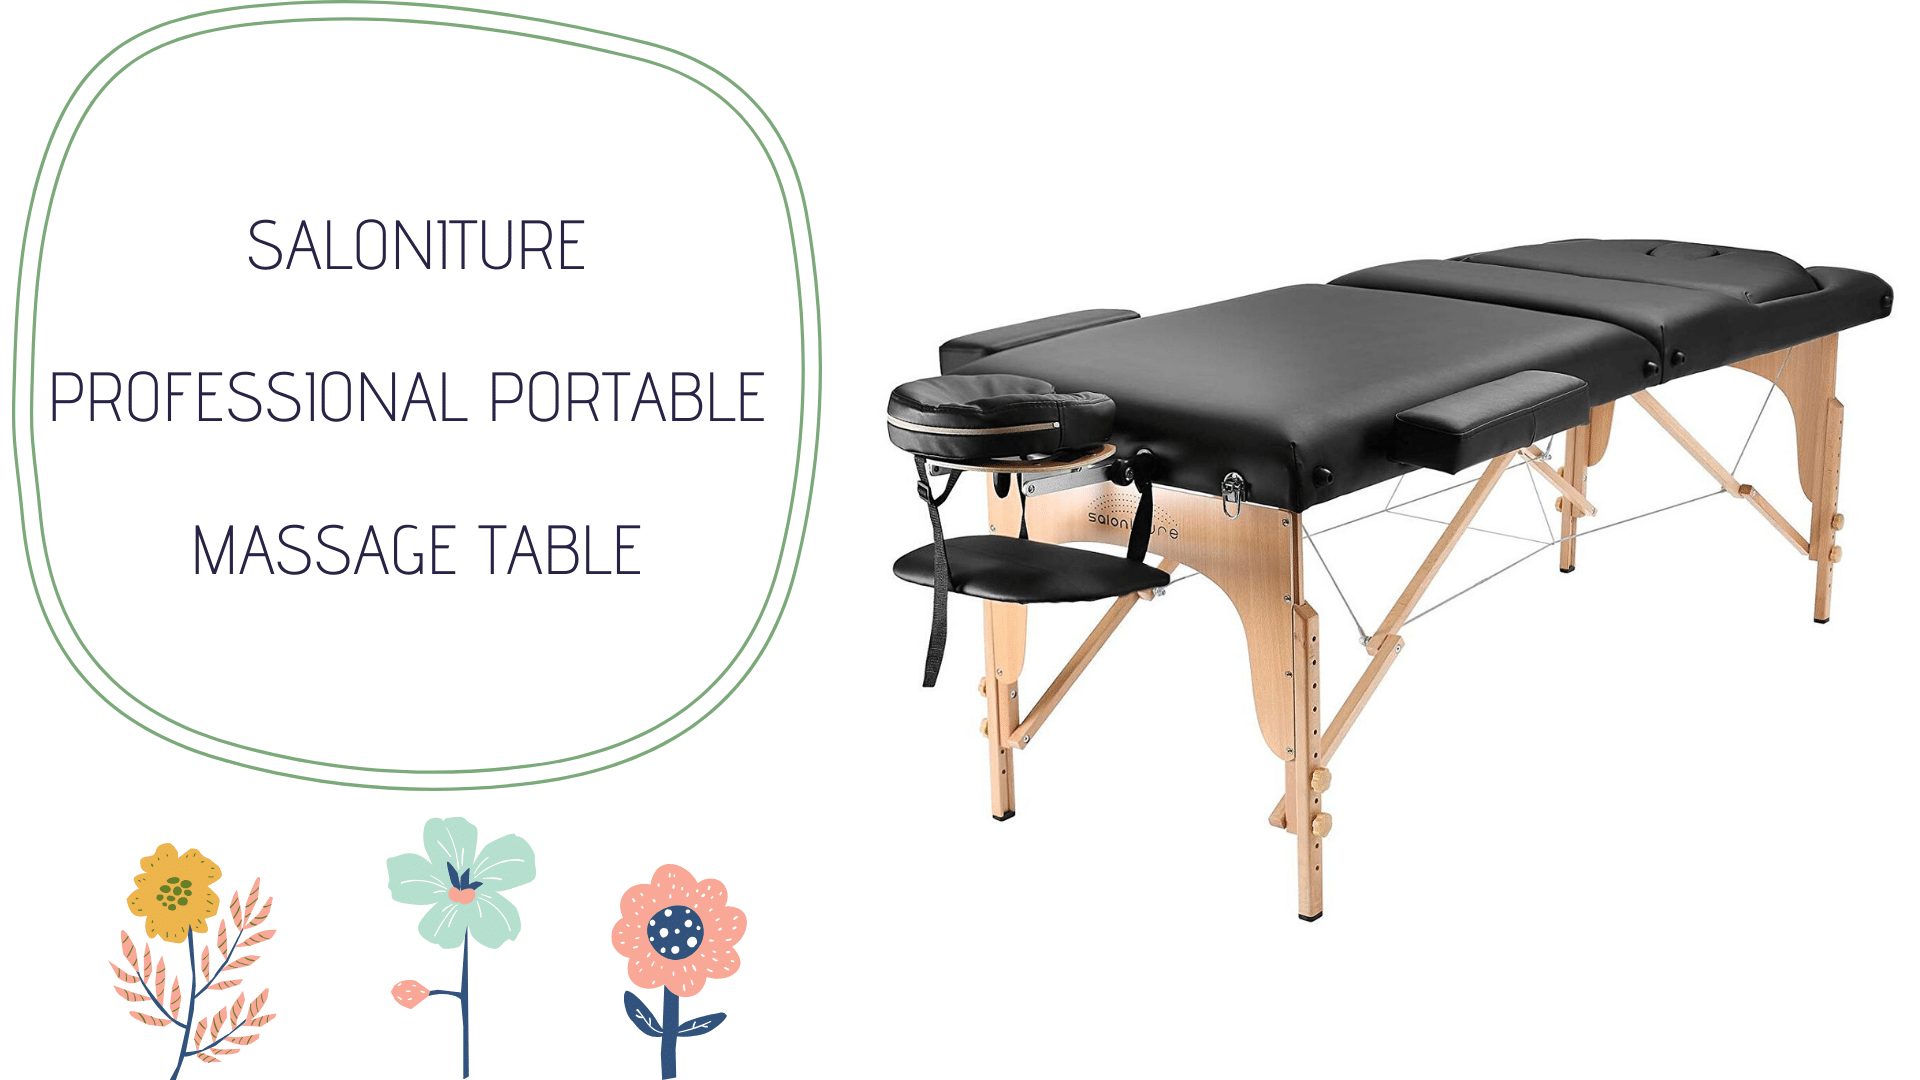 Saloniture Professional Portable Massage Table Review